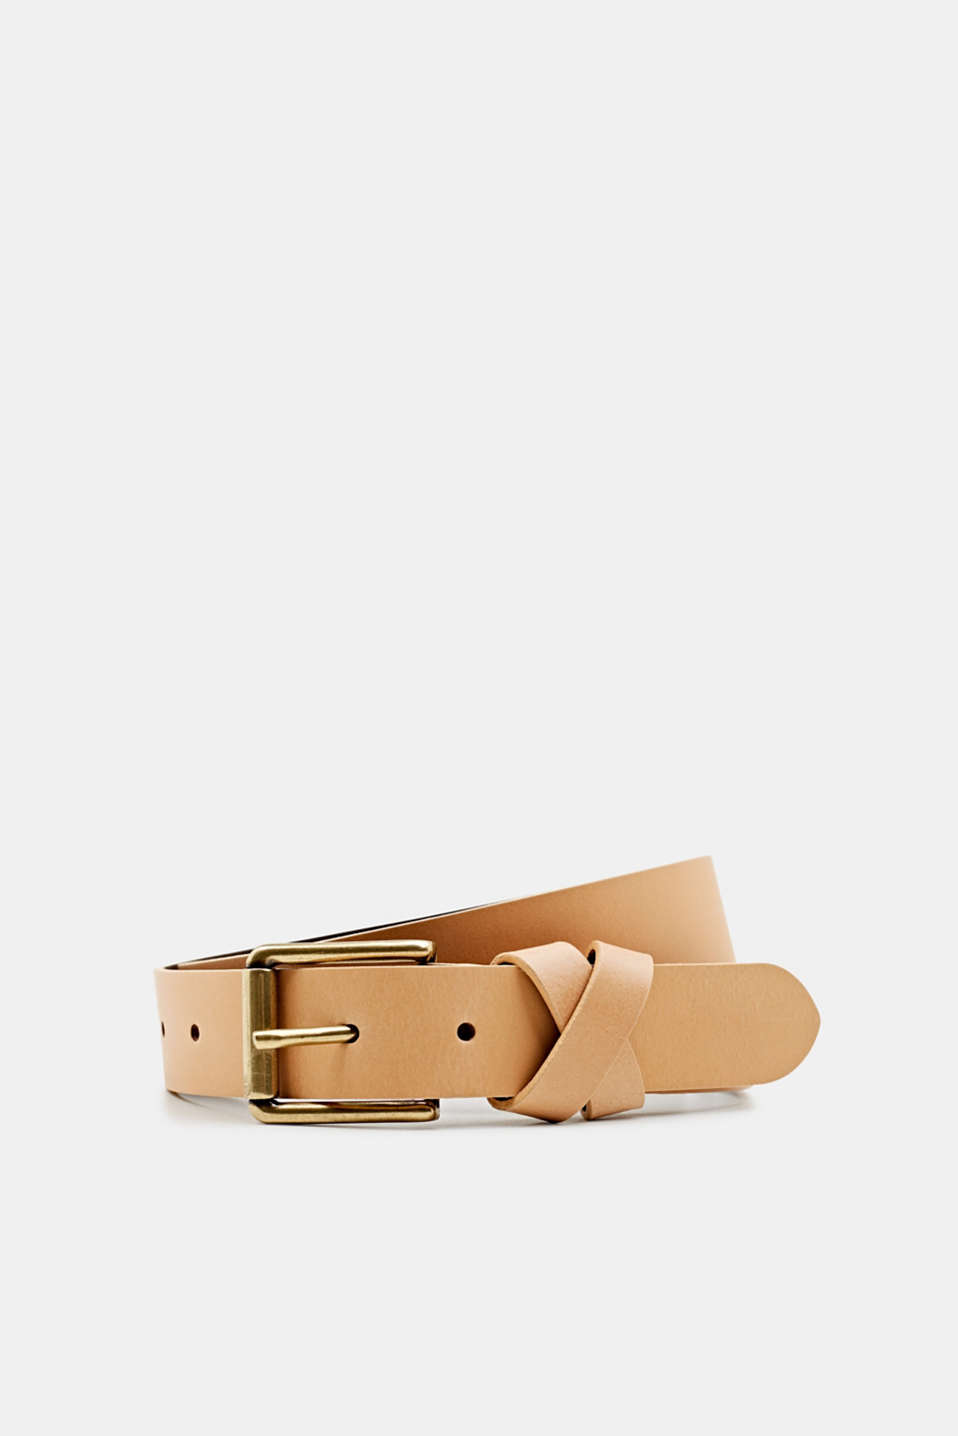 Esprit - Made of leather: belt with a crossed-over loop